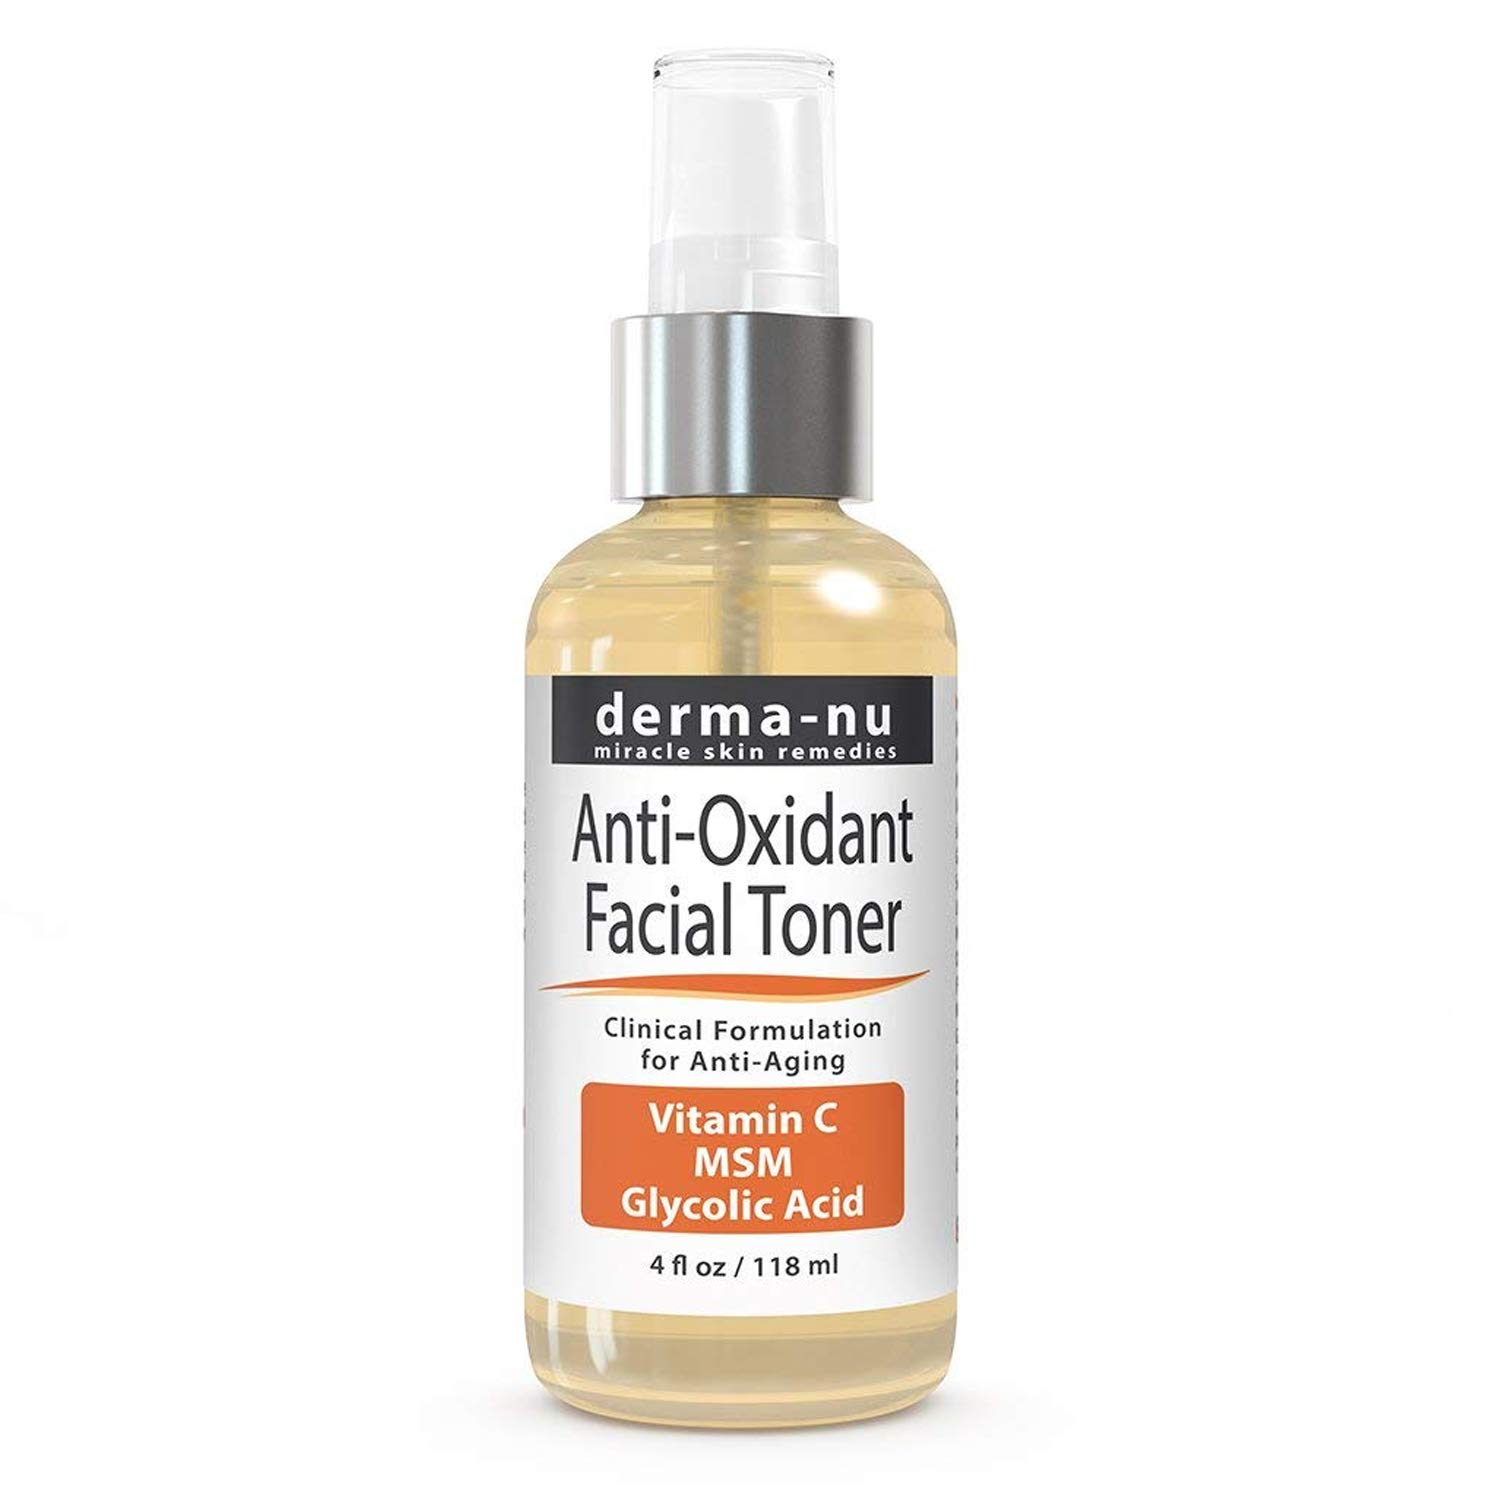 Natural Facial Toner with Vitamin C - Natural Anti Oxidant & Anti-Aging Face Wash for Women - Loaded with Powerful Antioxidants: Green Tea & Rose Hip Oil for Fine Lines & Wrinkles - Derma Nu - 4oz